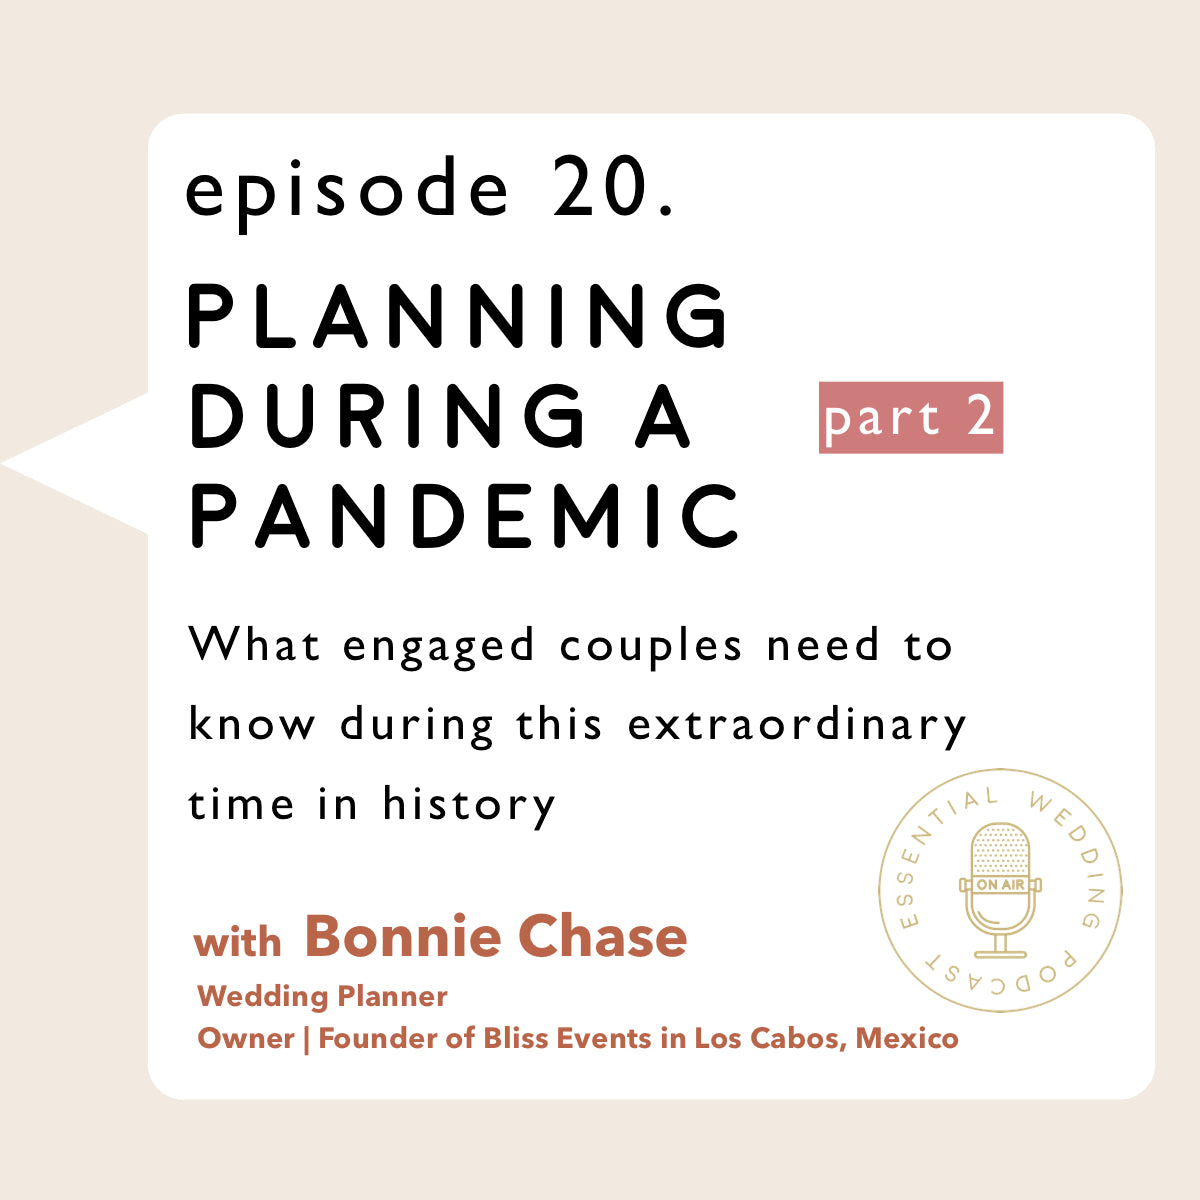 Ep. 20 Planning During a Pandemic pt. 2 w/Bonnie Chase of Bliss Events